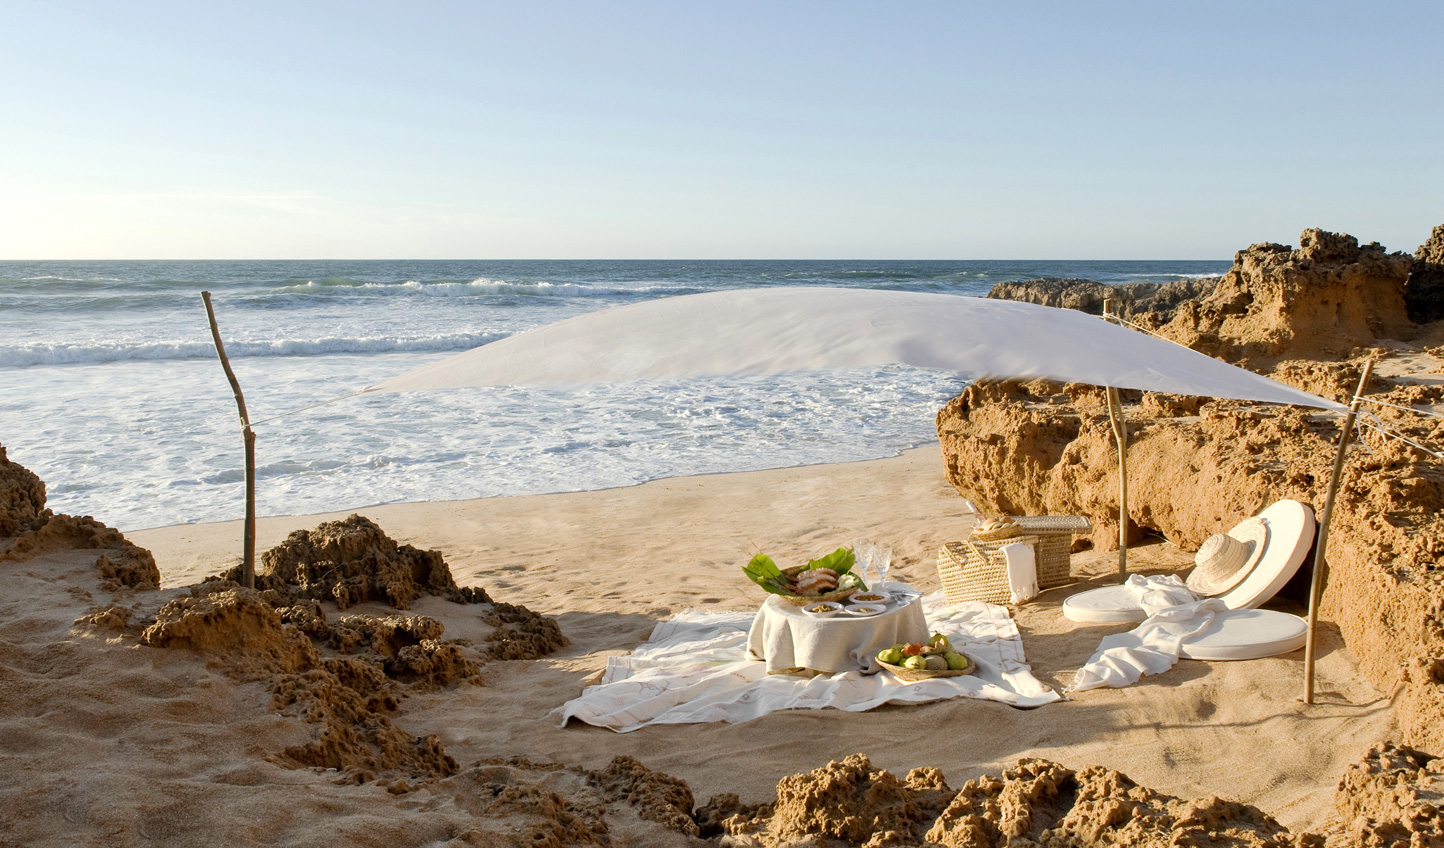 Find a quiet spot for a gourmet picnic on the beach